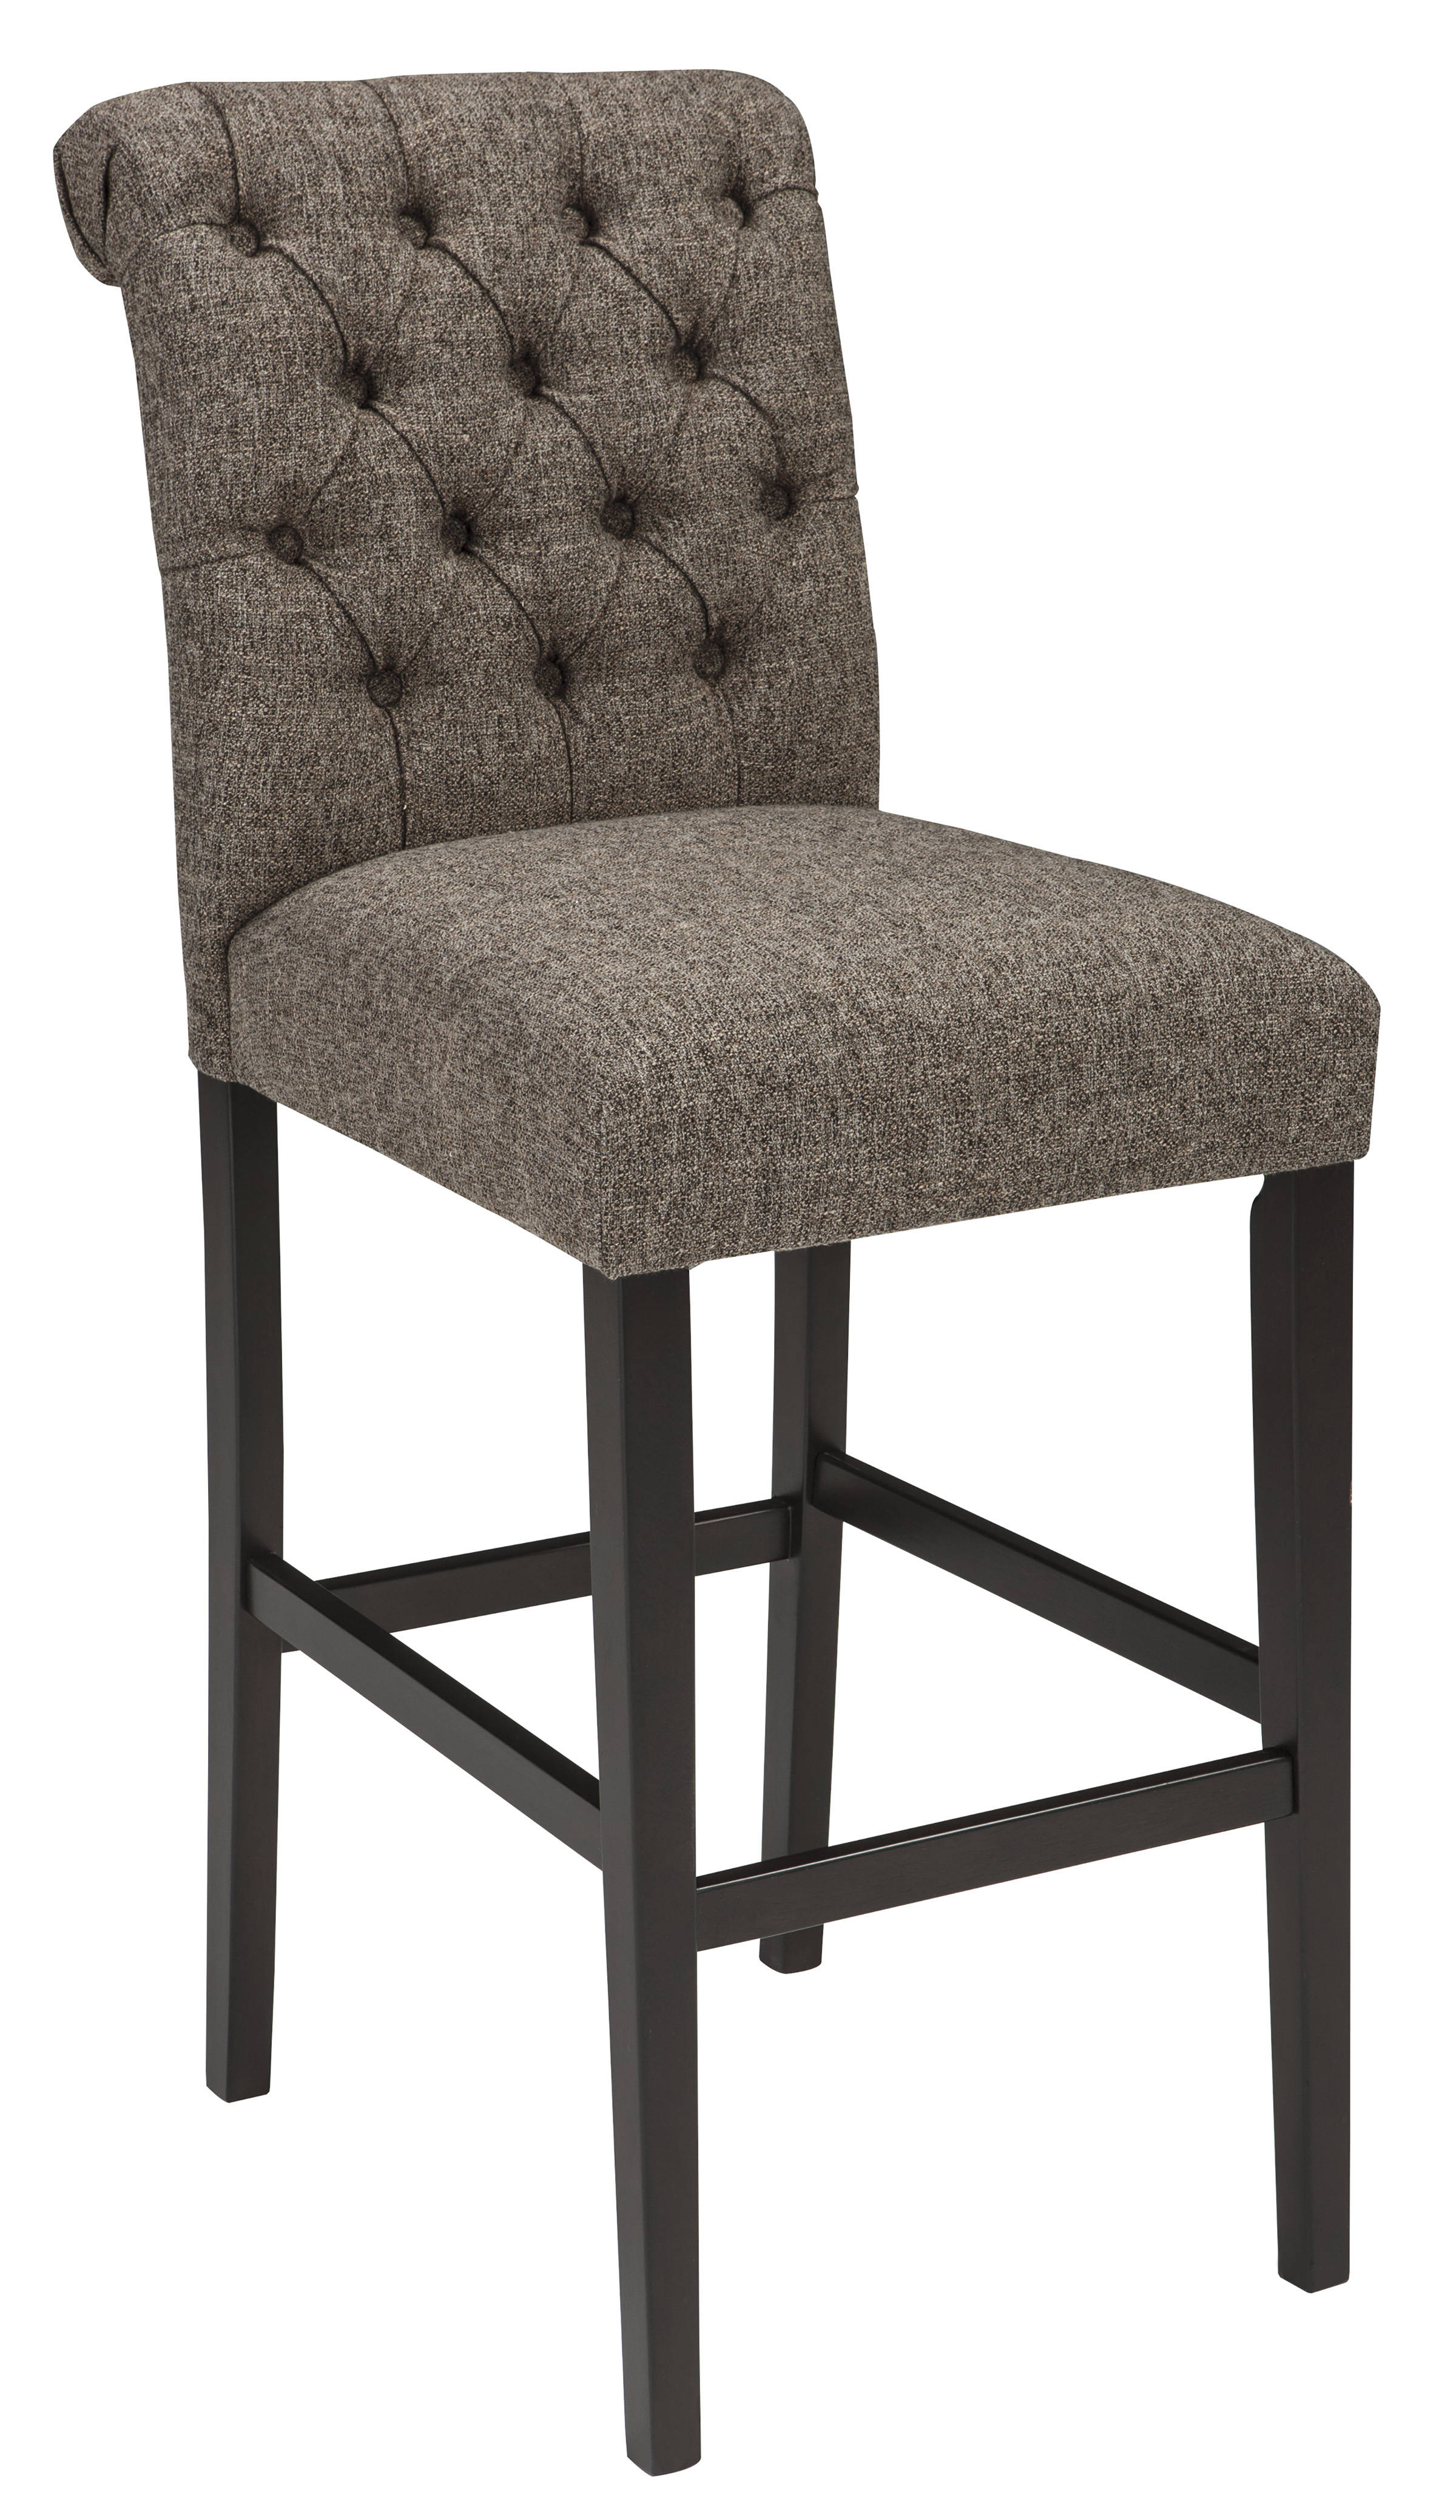 2 Ashley Furniture Tripton Brown Tall Upholstery Barstools Click To Enlarge  ...